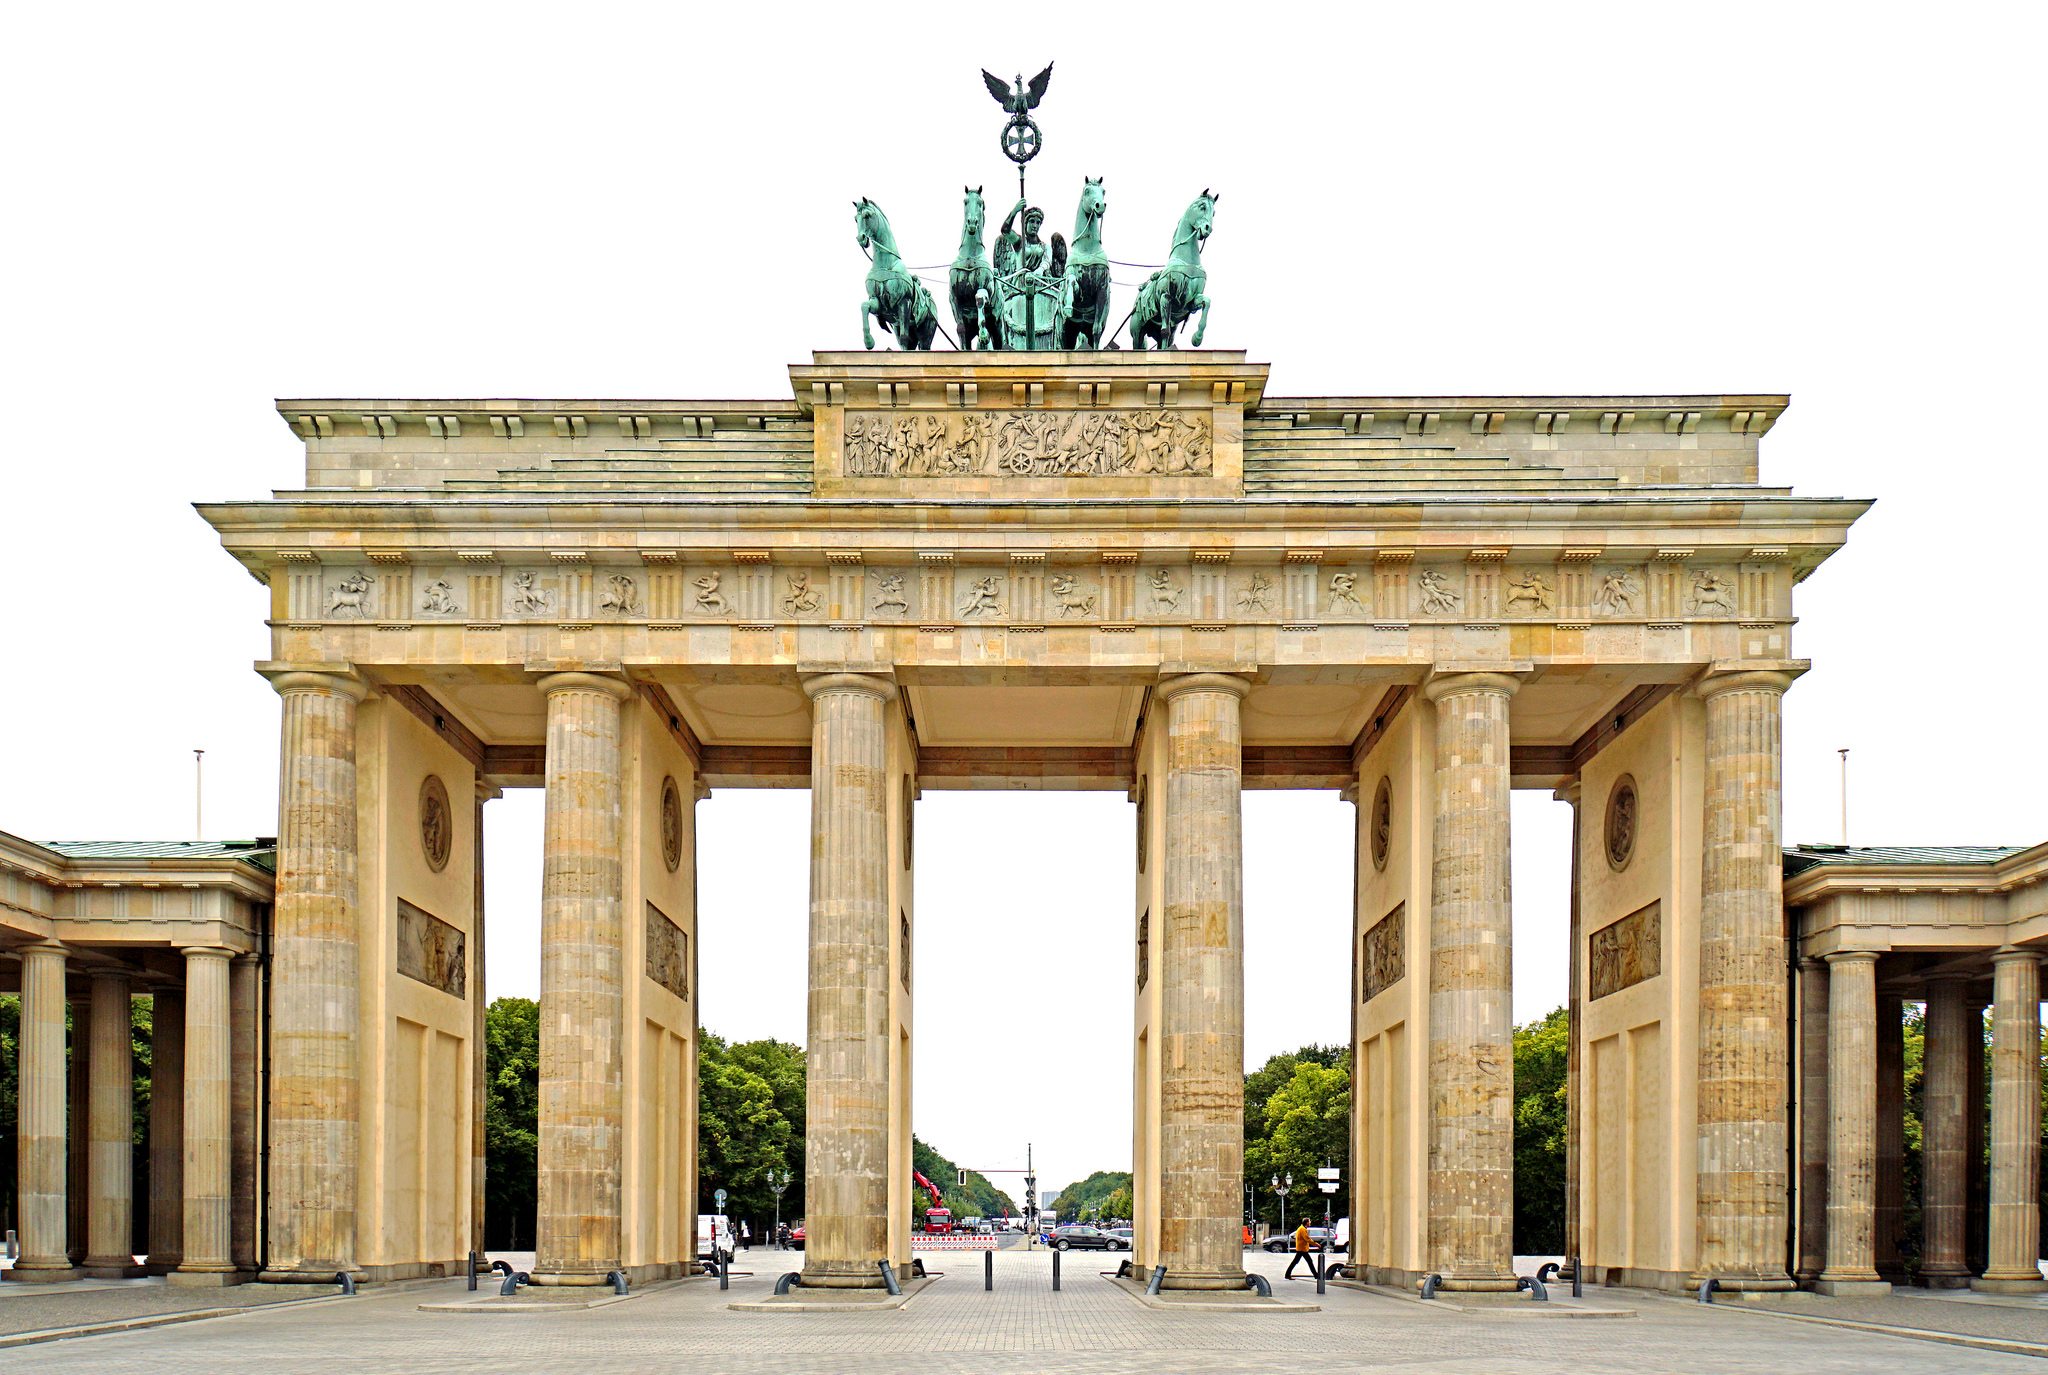 Brandenburg Gate, Ortsteil Mitte, Berlin, Germany